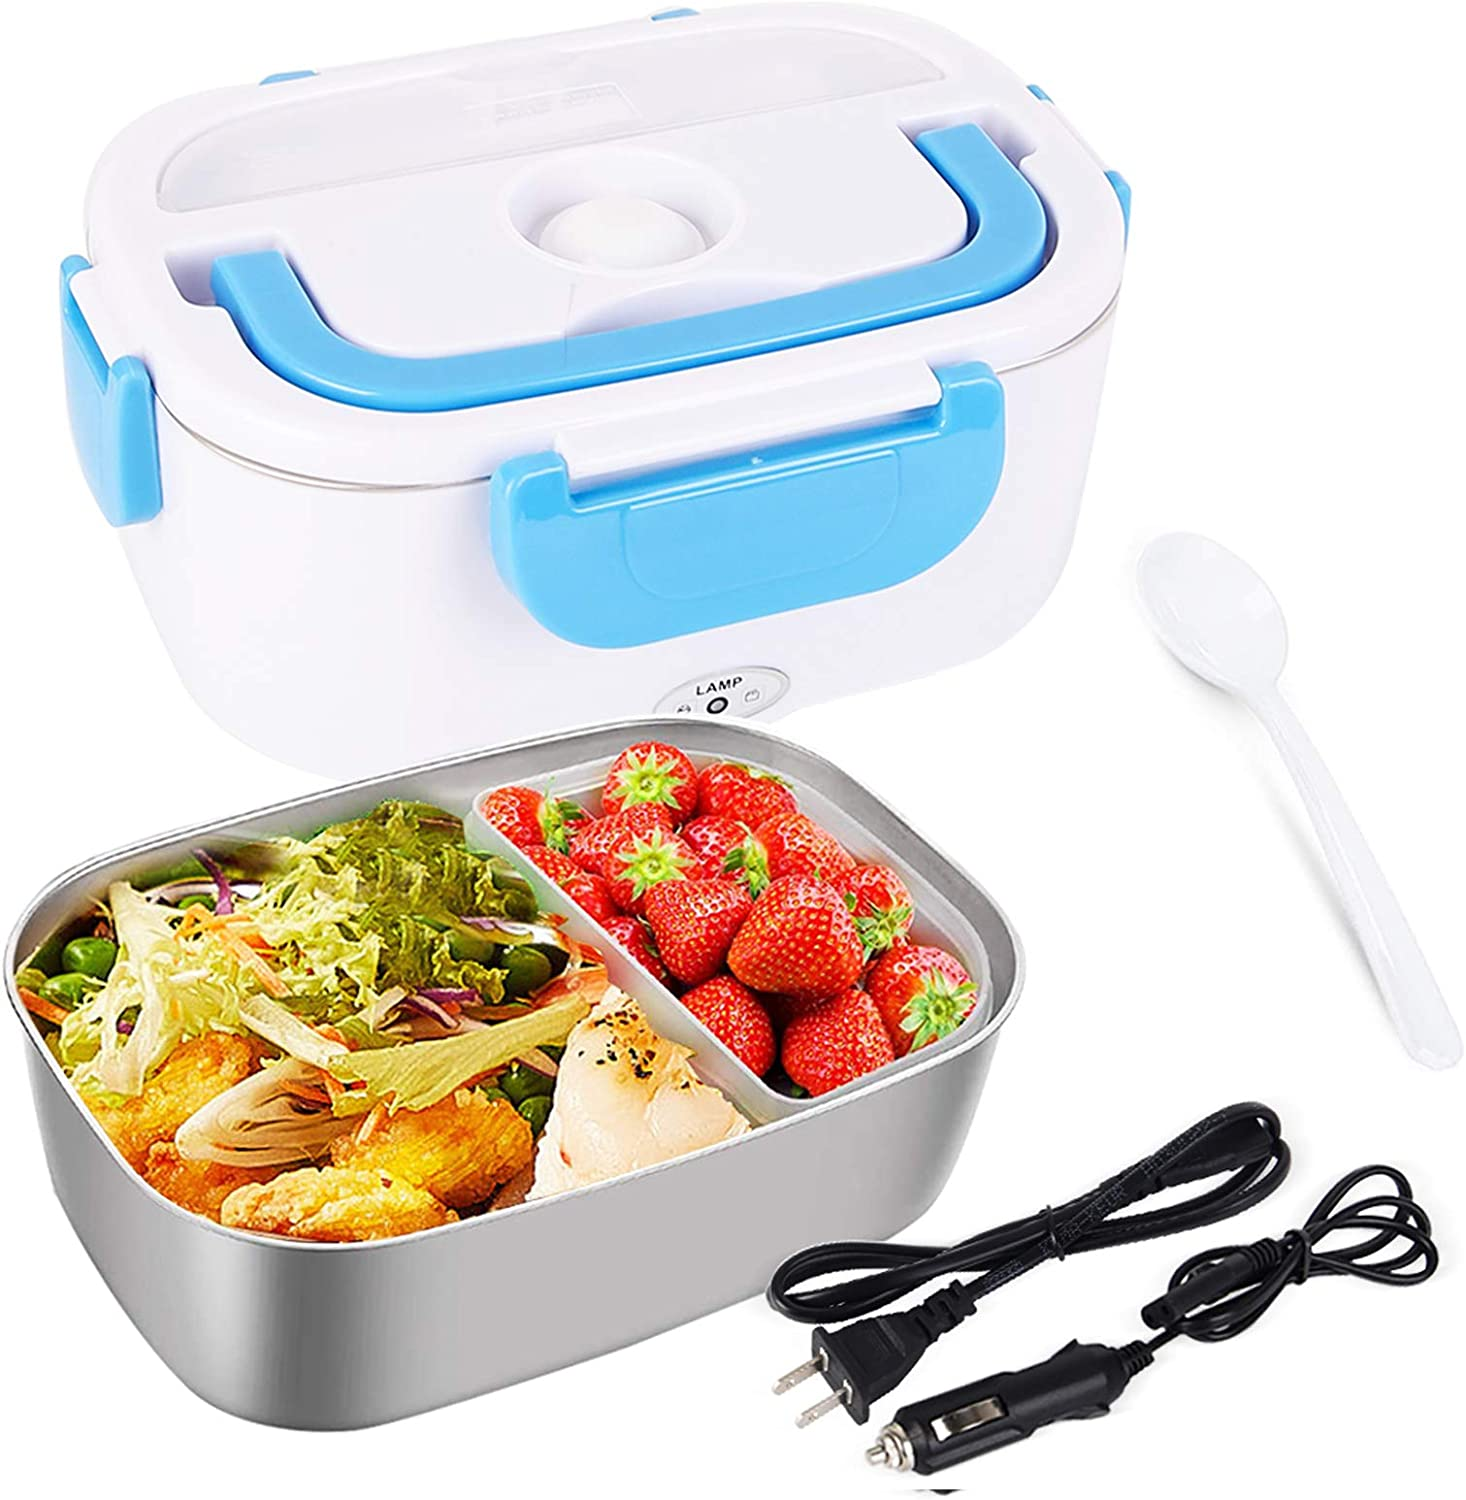 Electric Lunch Box for Car and Home 110V & 12V 40W, Portable Food Warmer Heater 1.5L, Food-Grade Stainless Steel Container, Spoon and 2 Compartments Included (Blue)